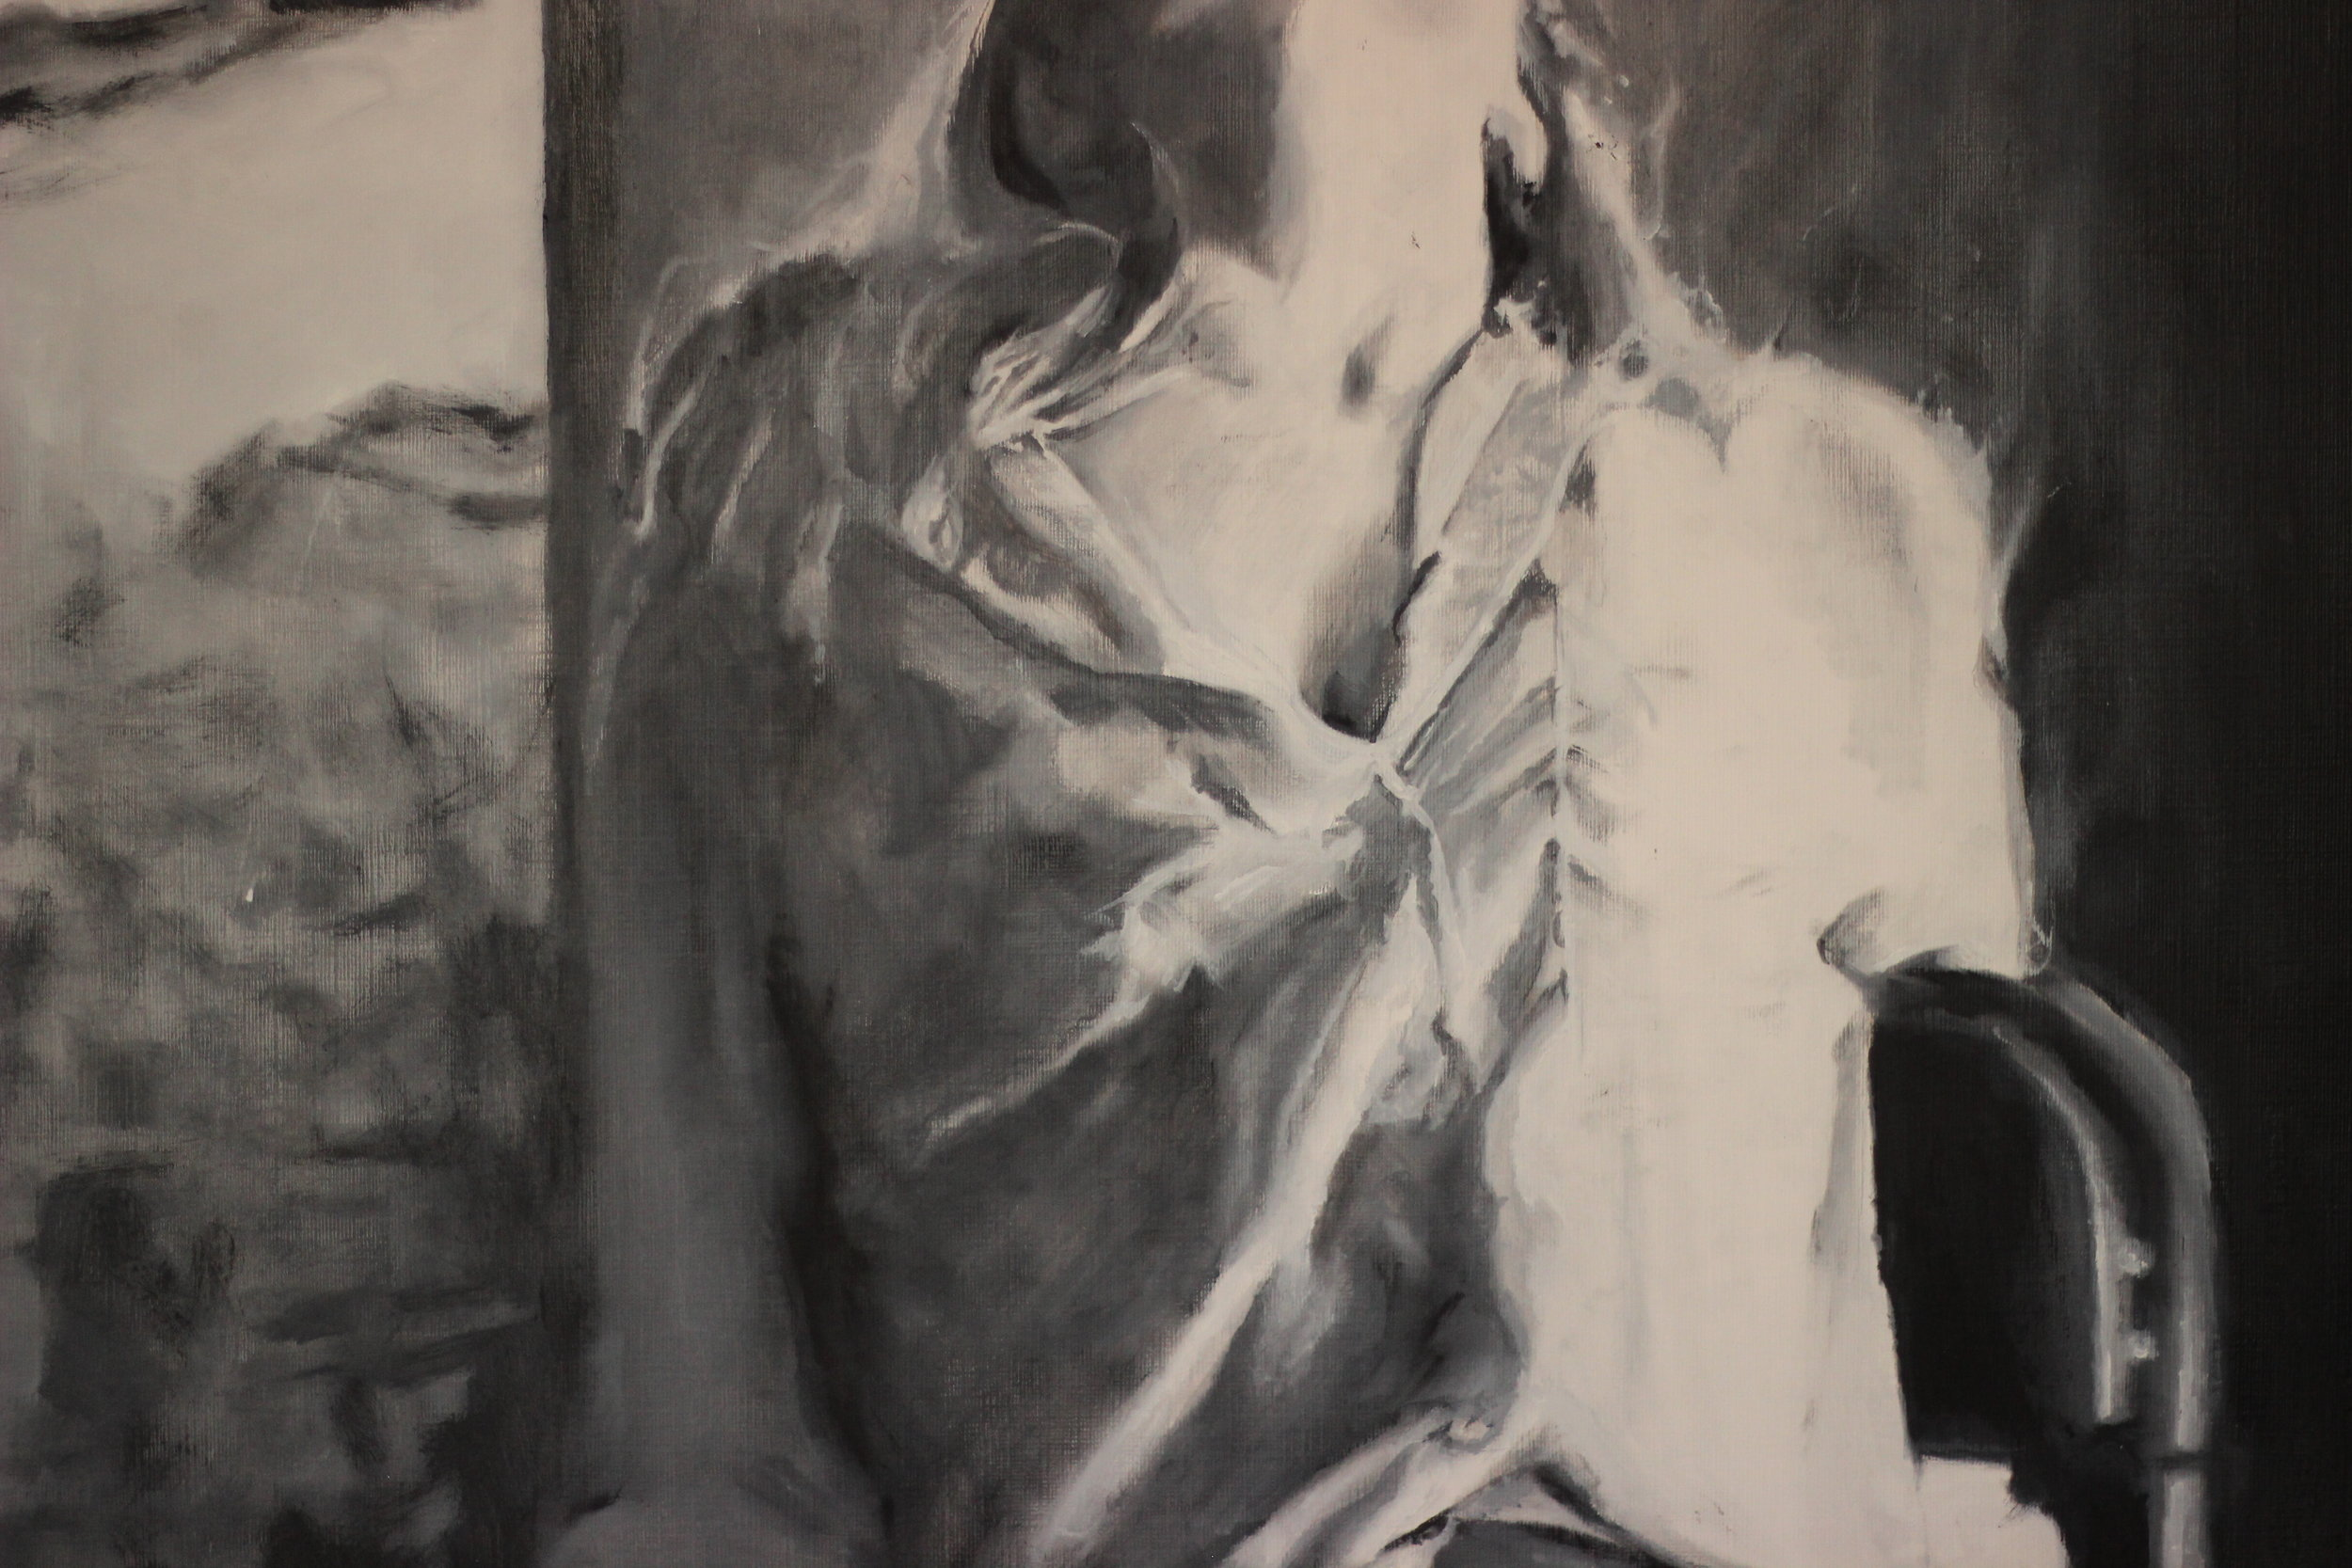 .. of 'pushing paint,' breathing fumes, dripping oils and wiping ..